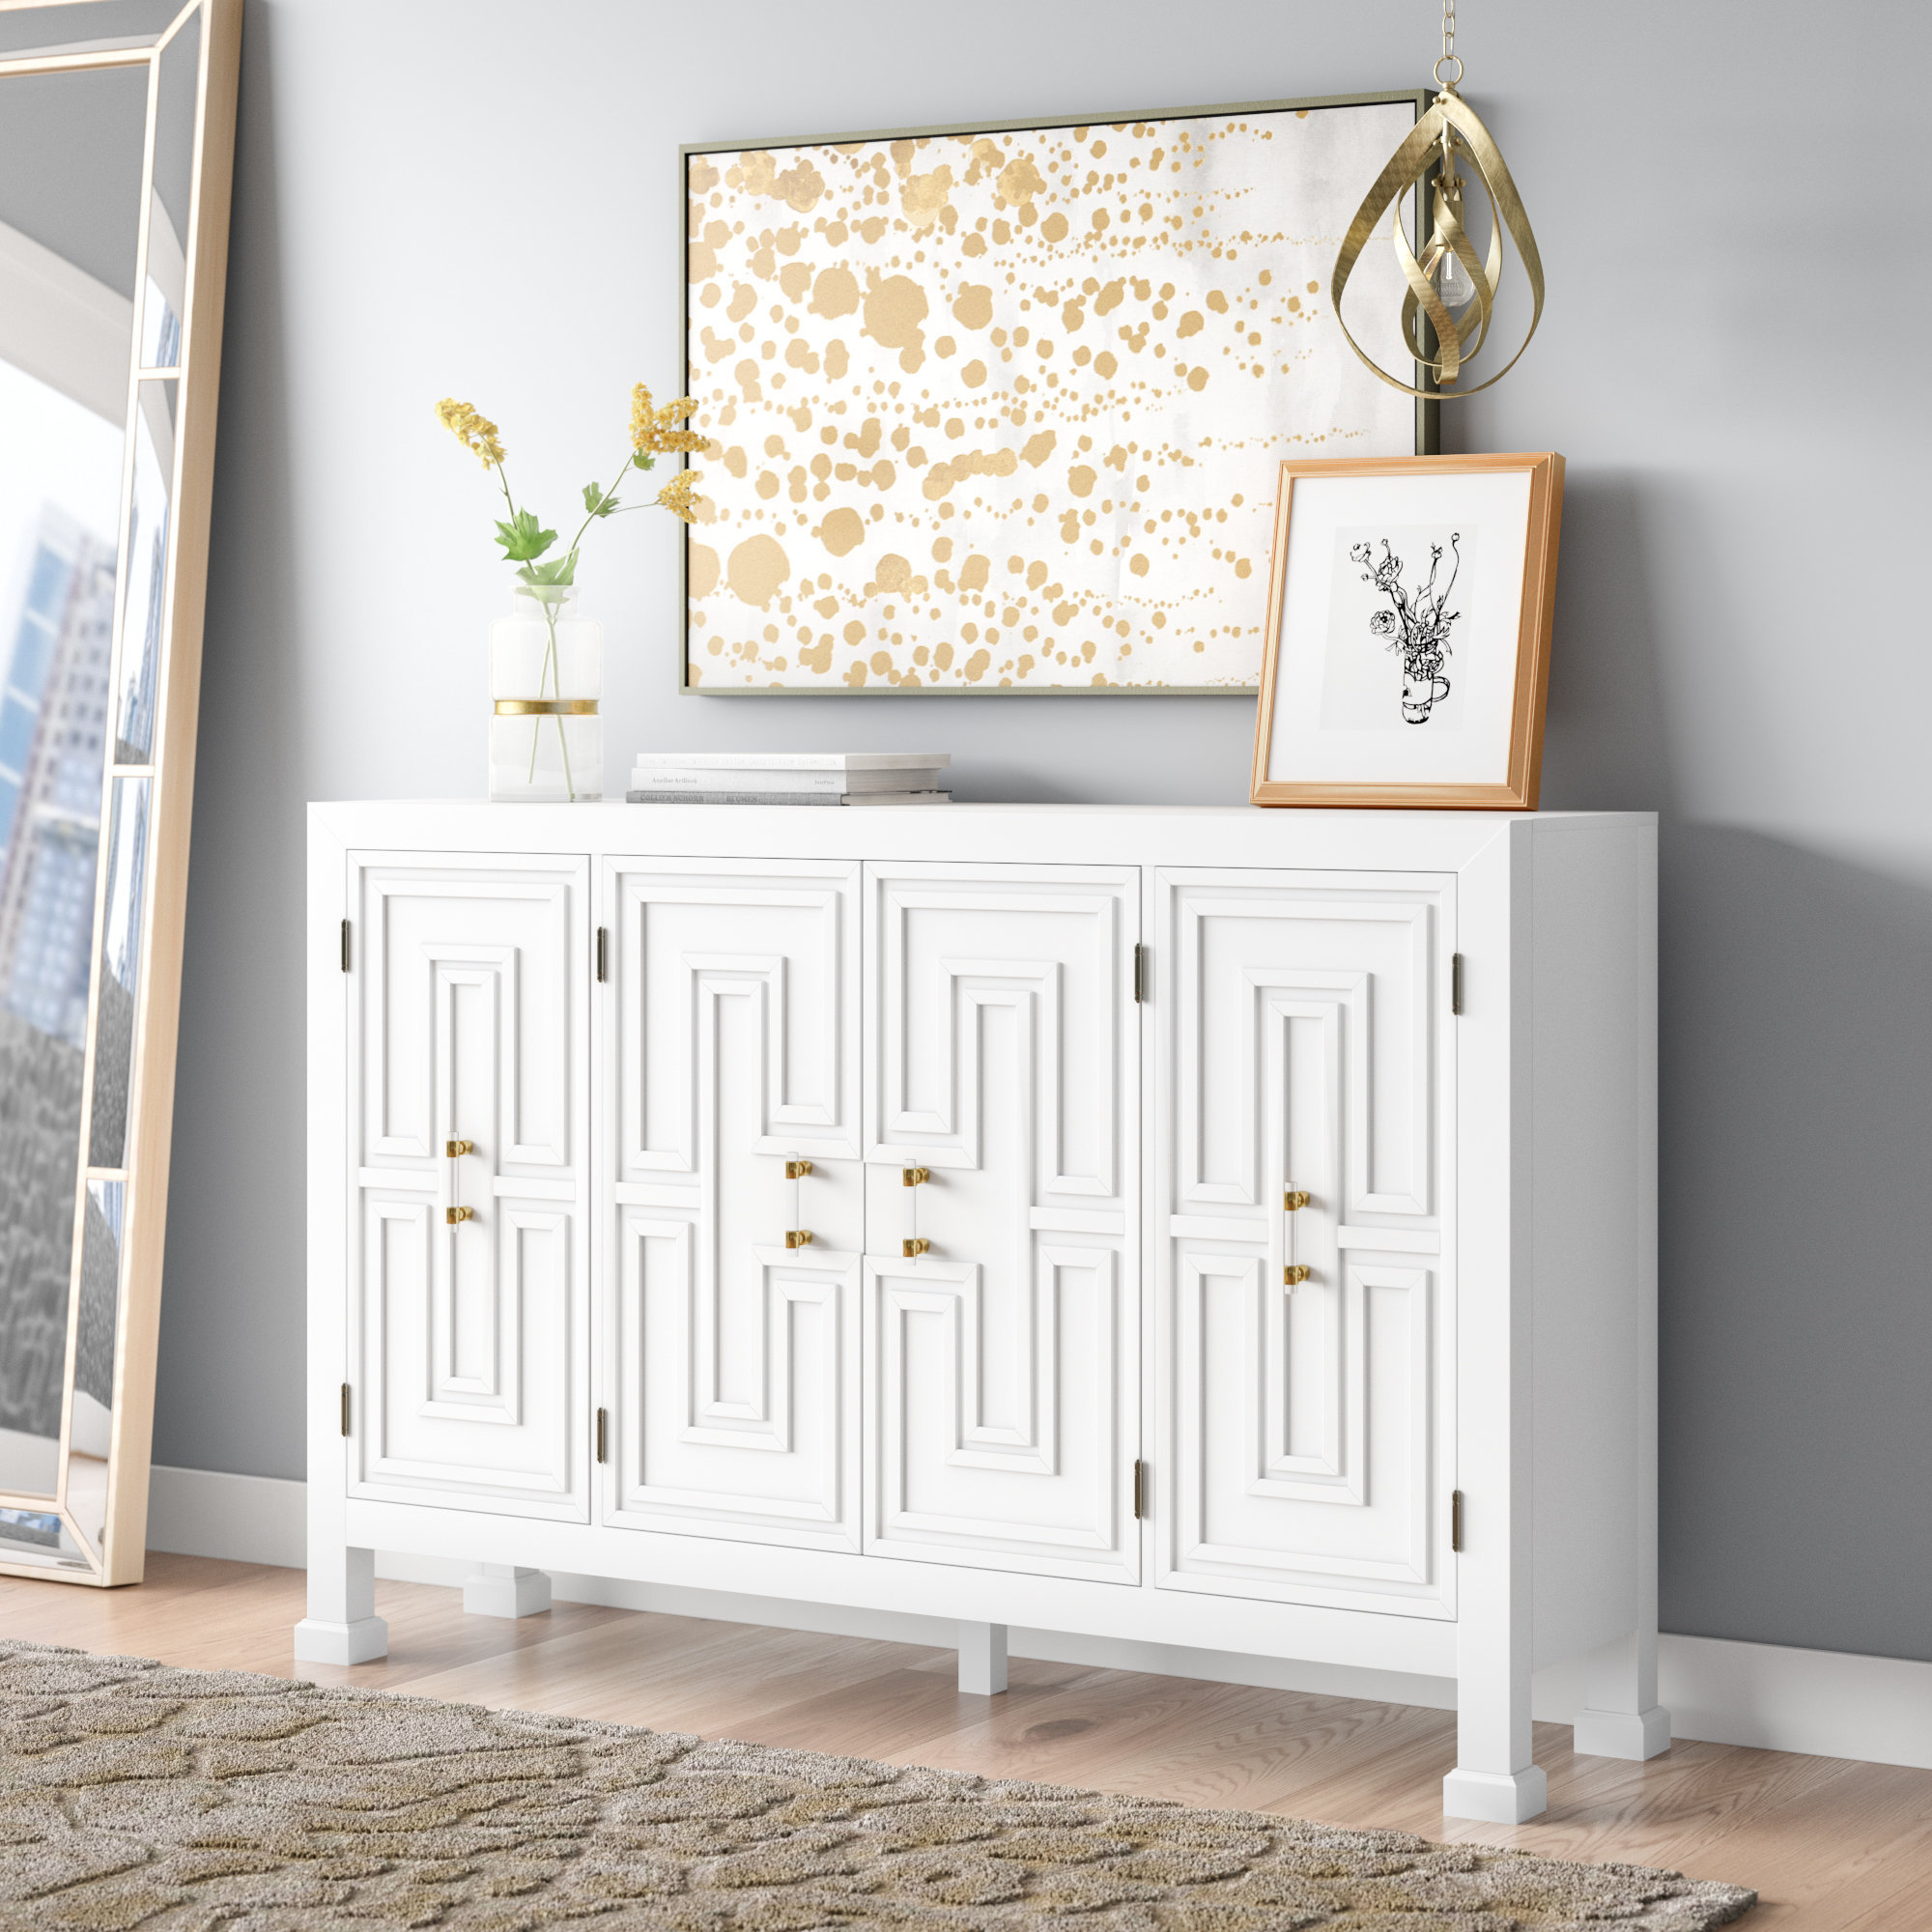 Mercer41 Lainey Credenza & Reviews | Wayfair Intended For Best And Newest Lainey Credenzas (#15 of 20)